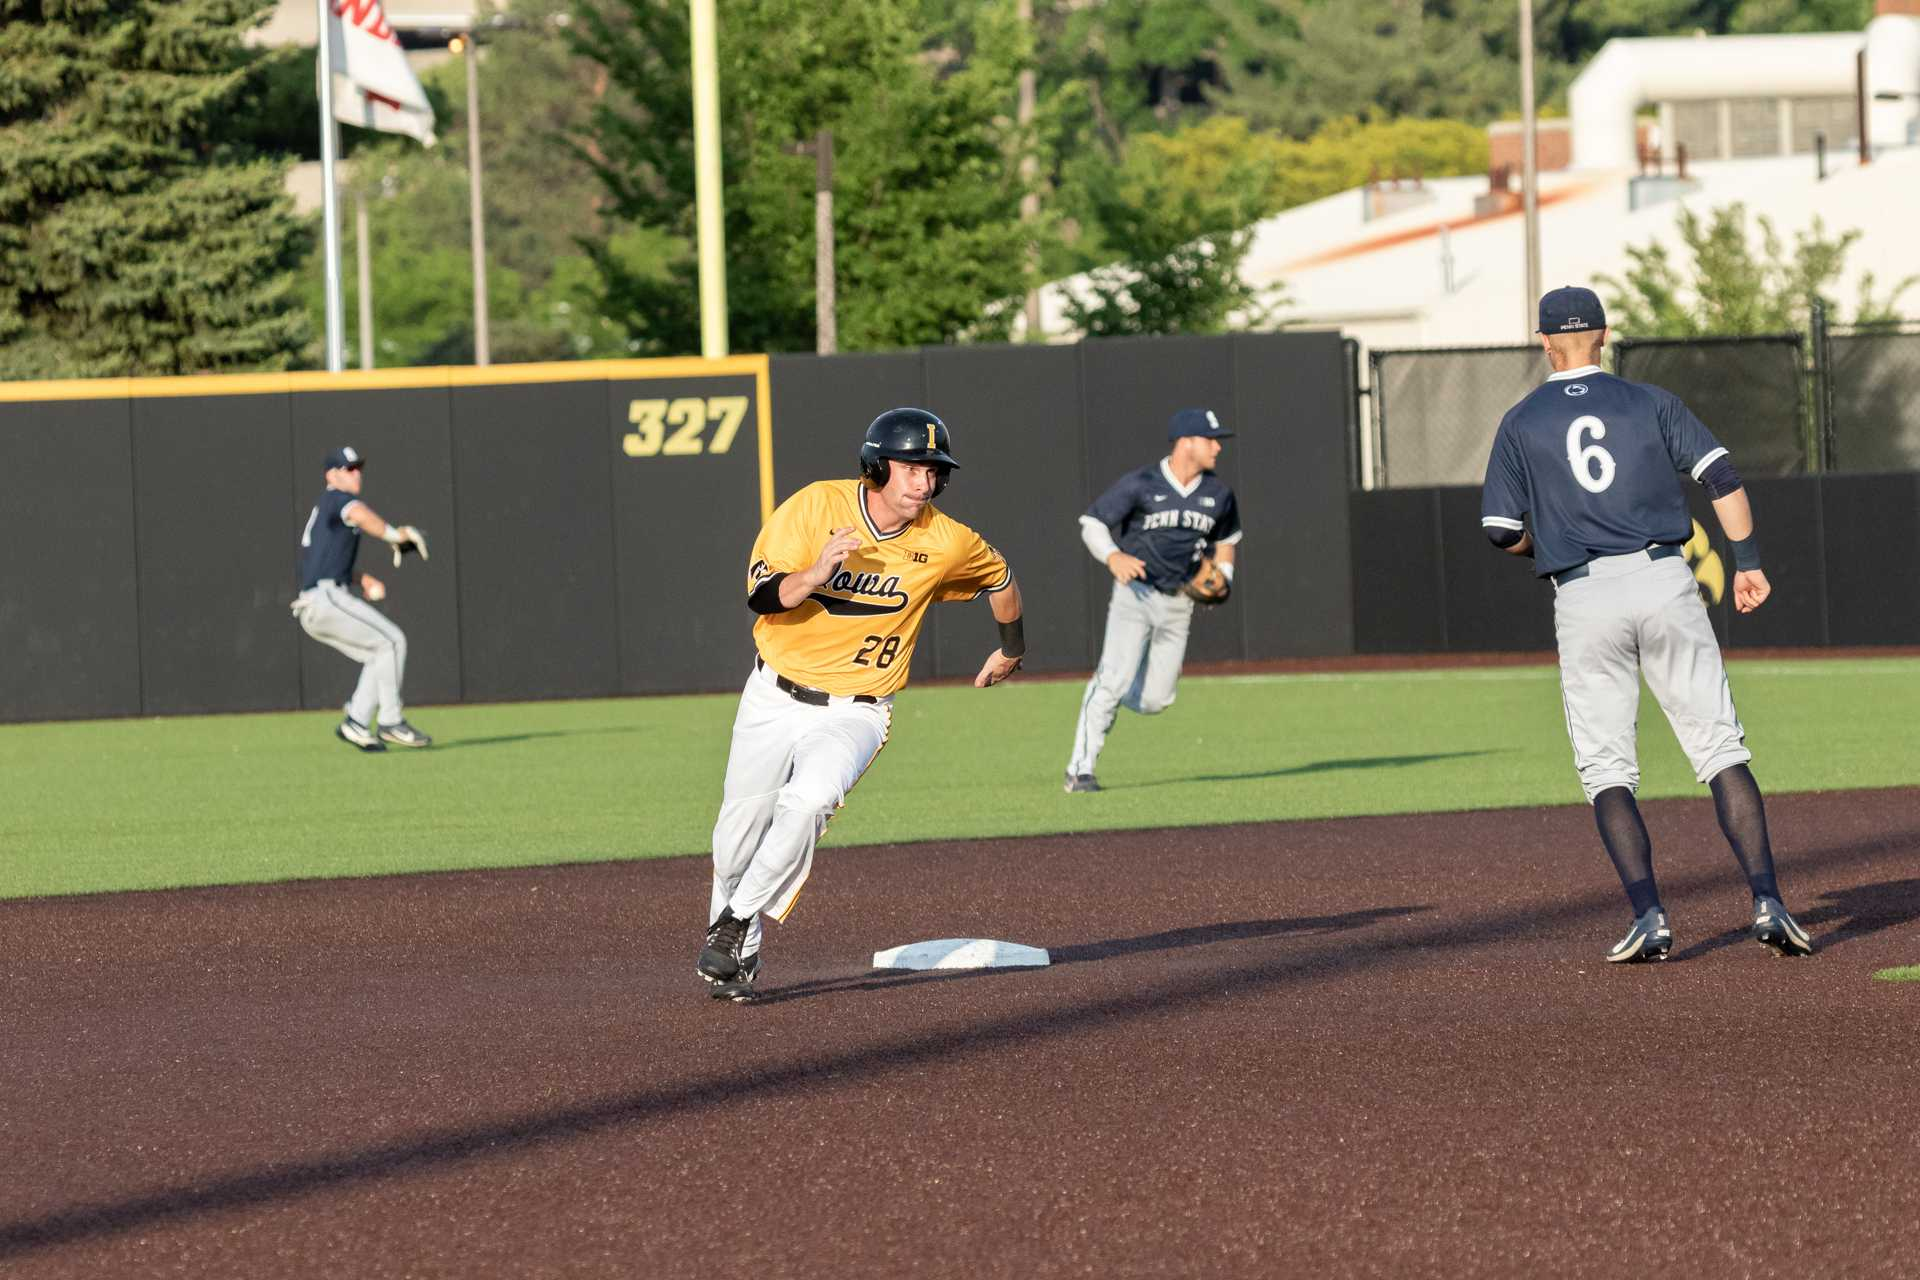 3 takeaways from Iowa baseball's opening weekend